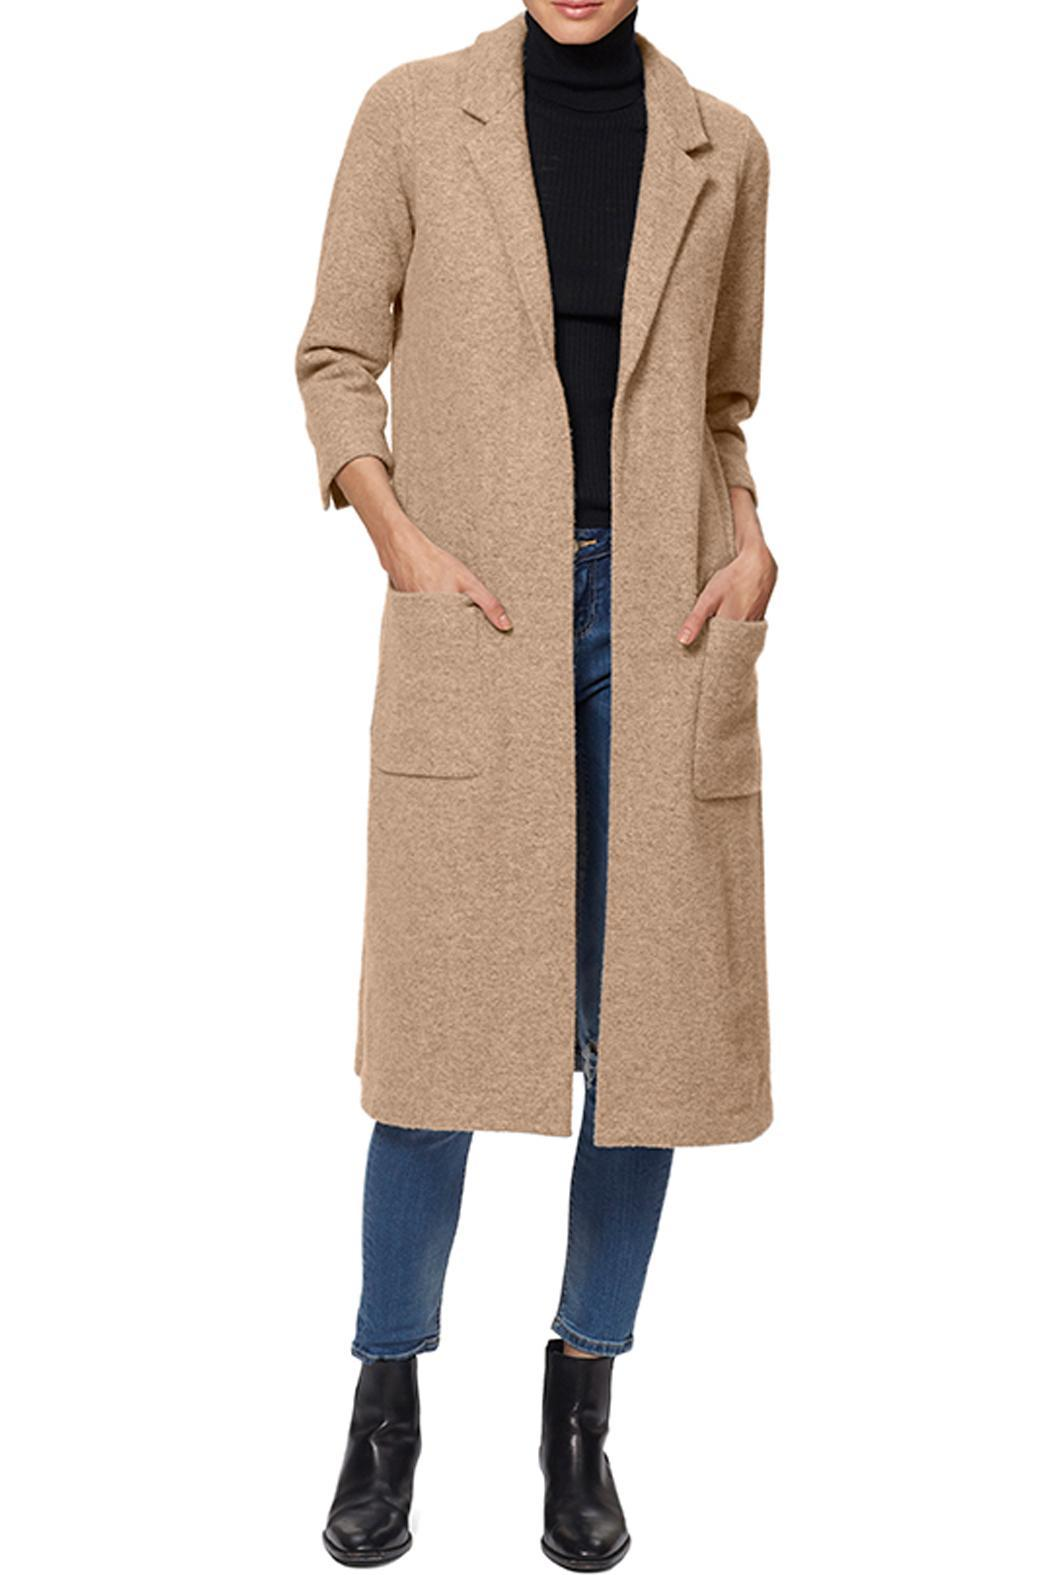 103c04d3c 360 Cashmere Adeline Wool Jacket from Seattle by Jack Jerome ...